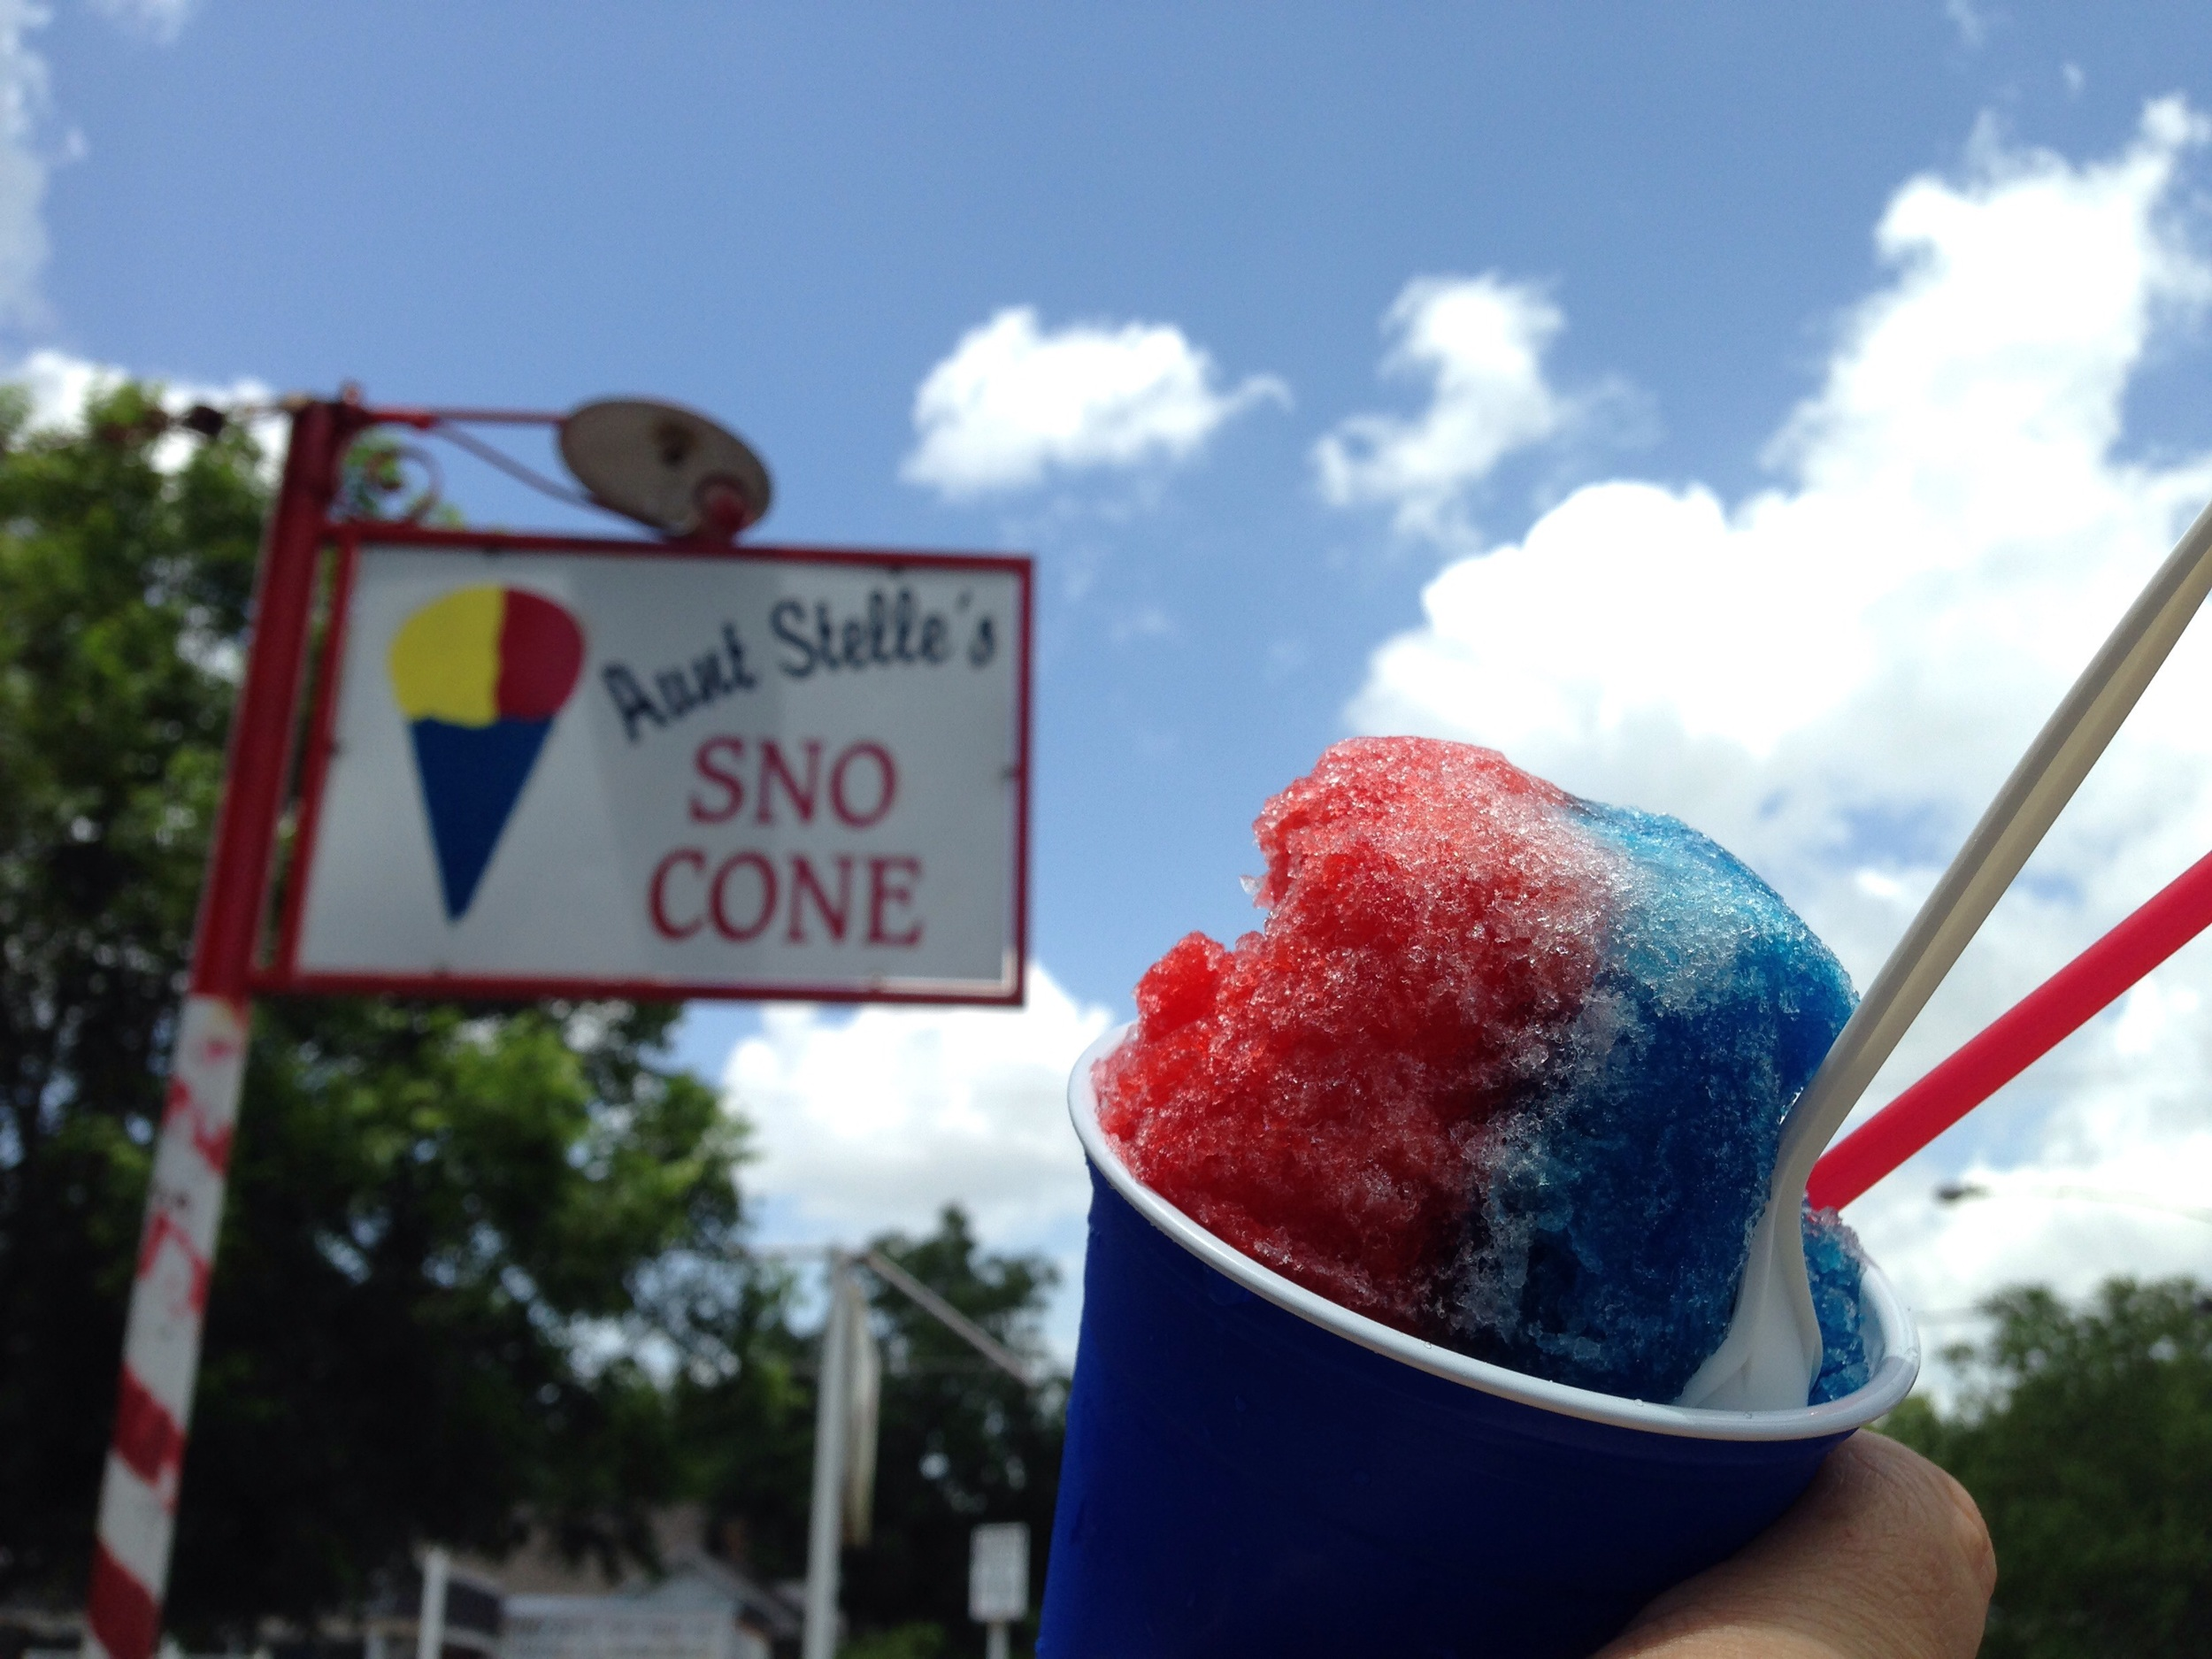 A 4th of July Aunt Stelle's Sno Cone